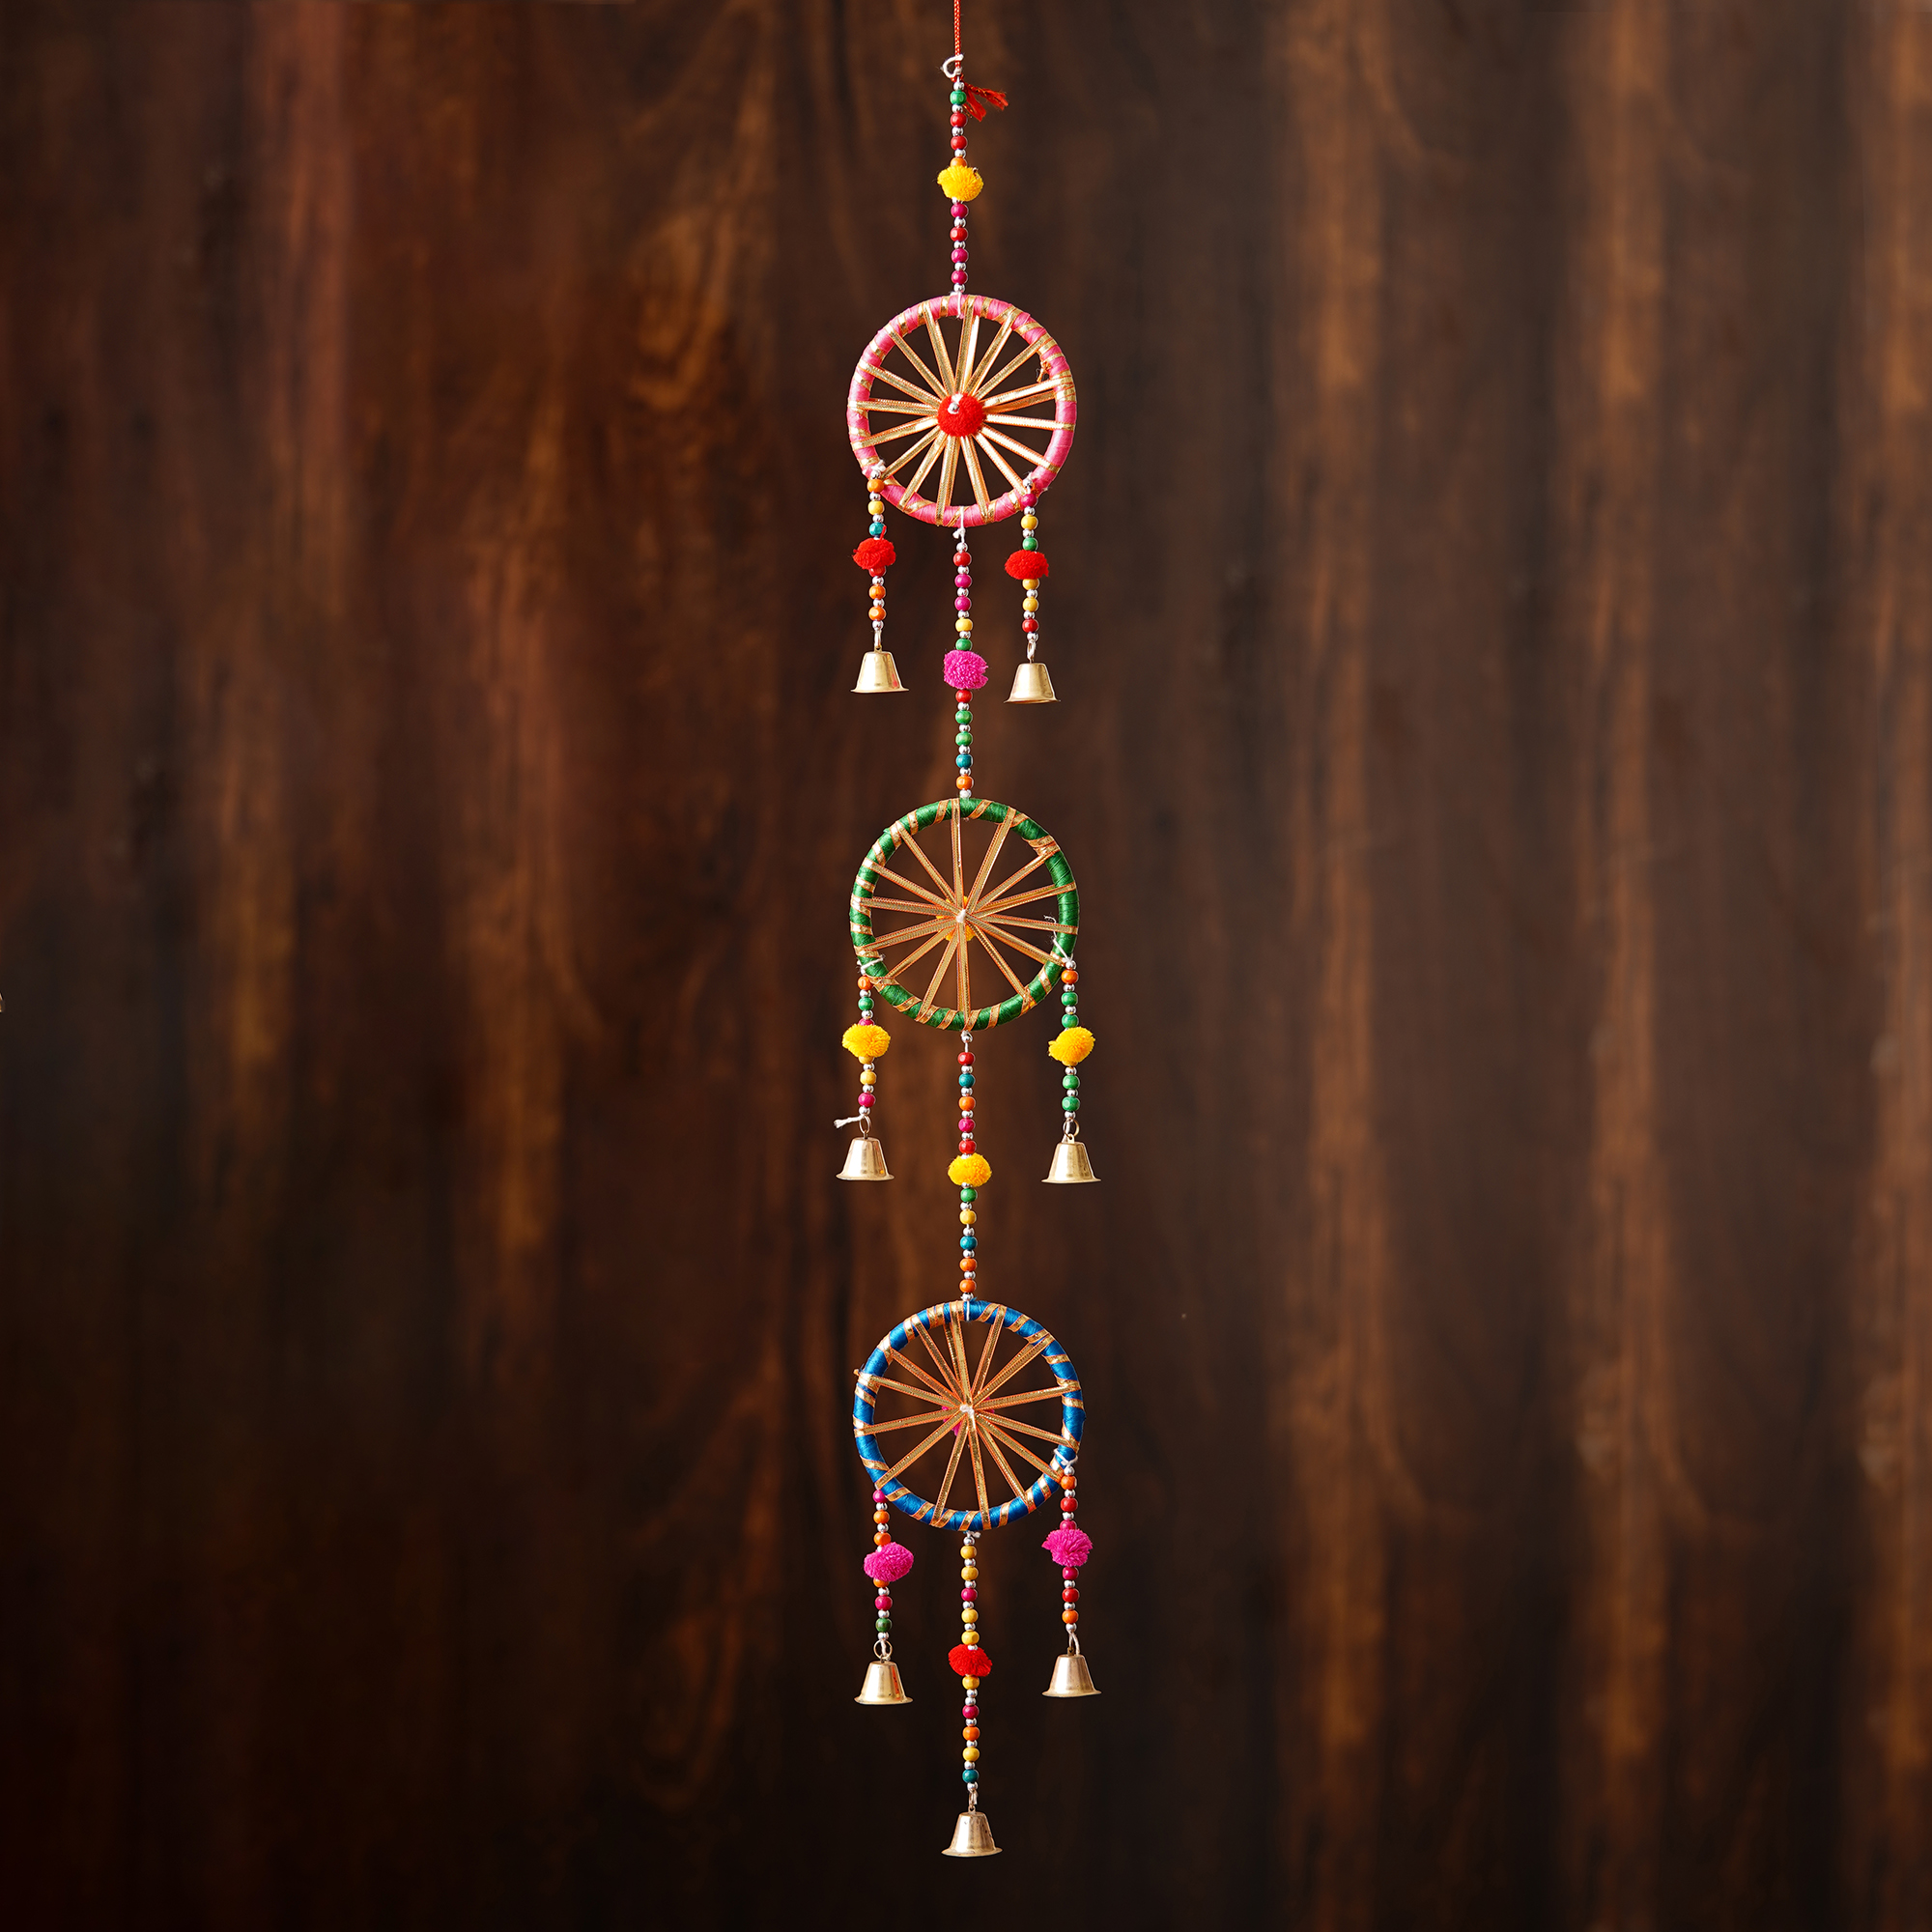 Handcrafted Decorative Colorful Cicles with Gota Patti Wall/Door/Window Hanging Bells Indian Home Decor